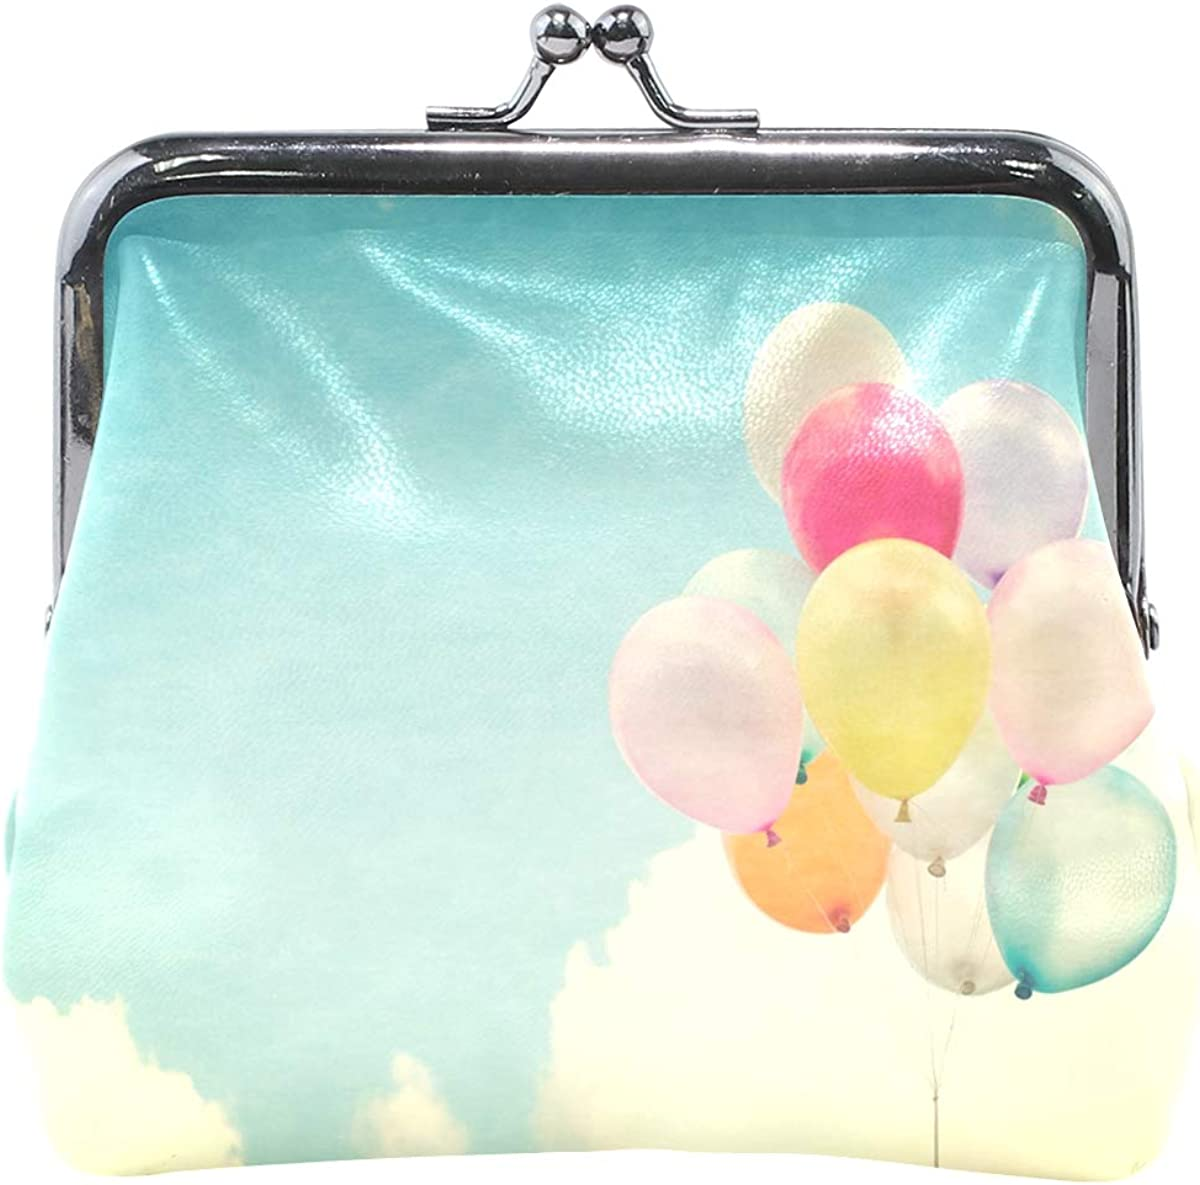 Women Wallet Purse Sky Vintage Balloon Colorful Clutch Bag Leather